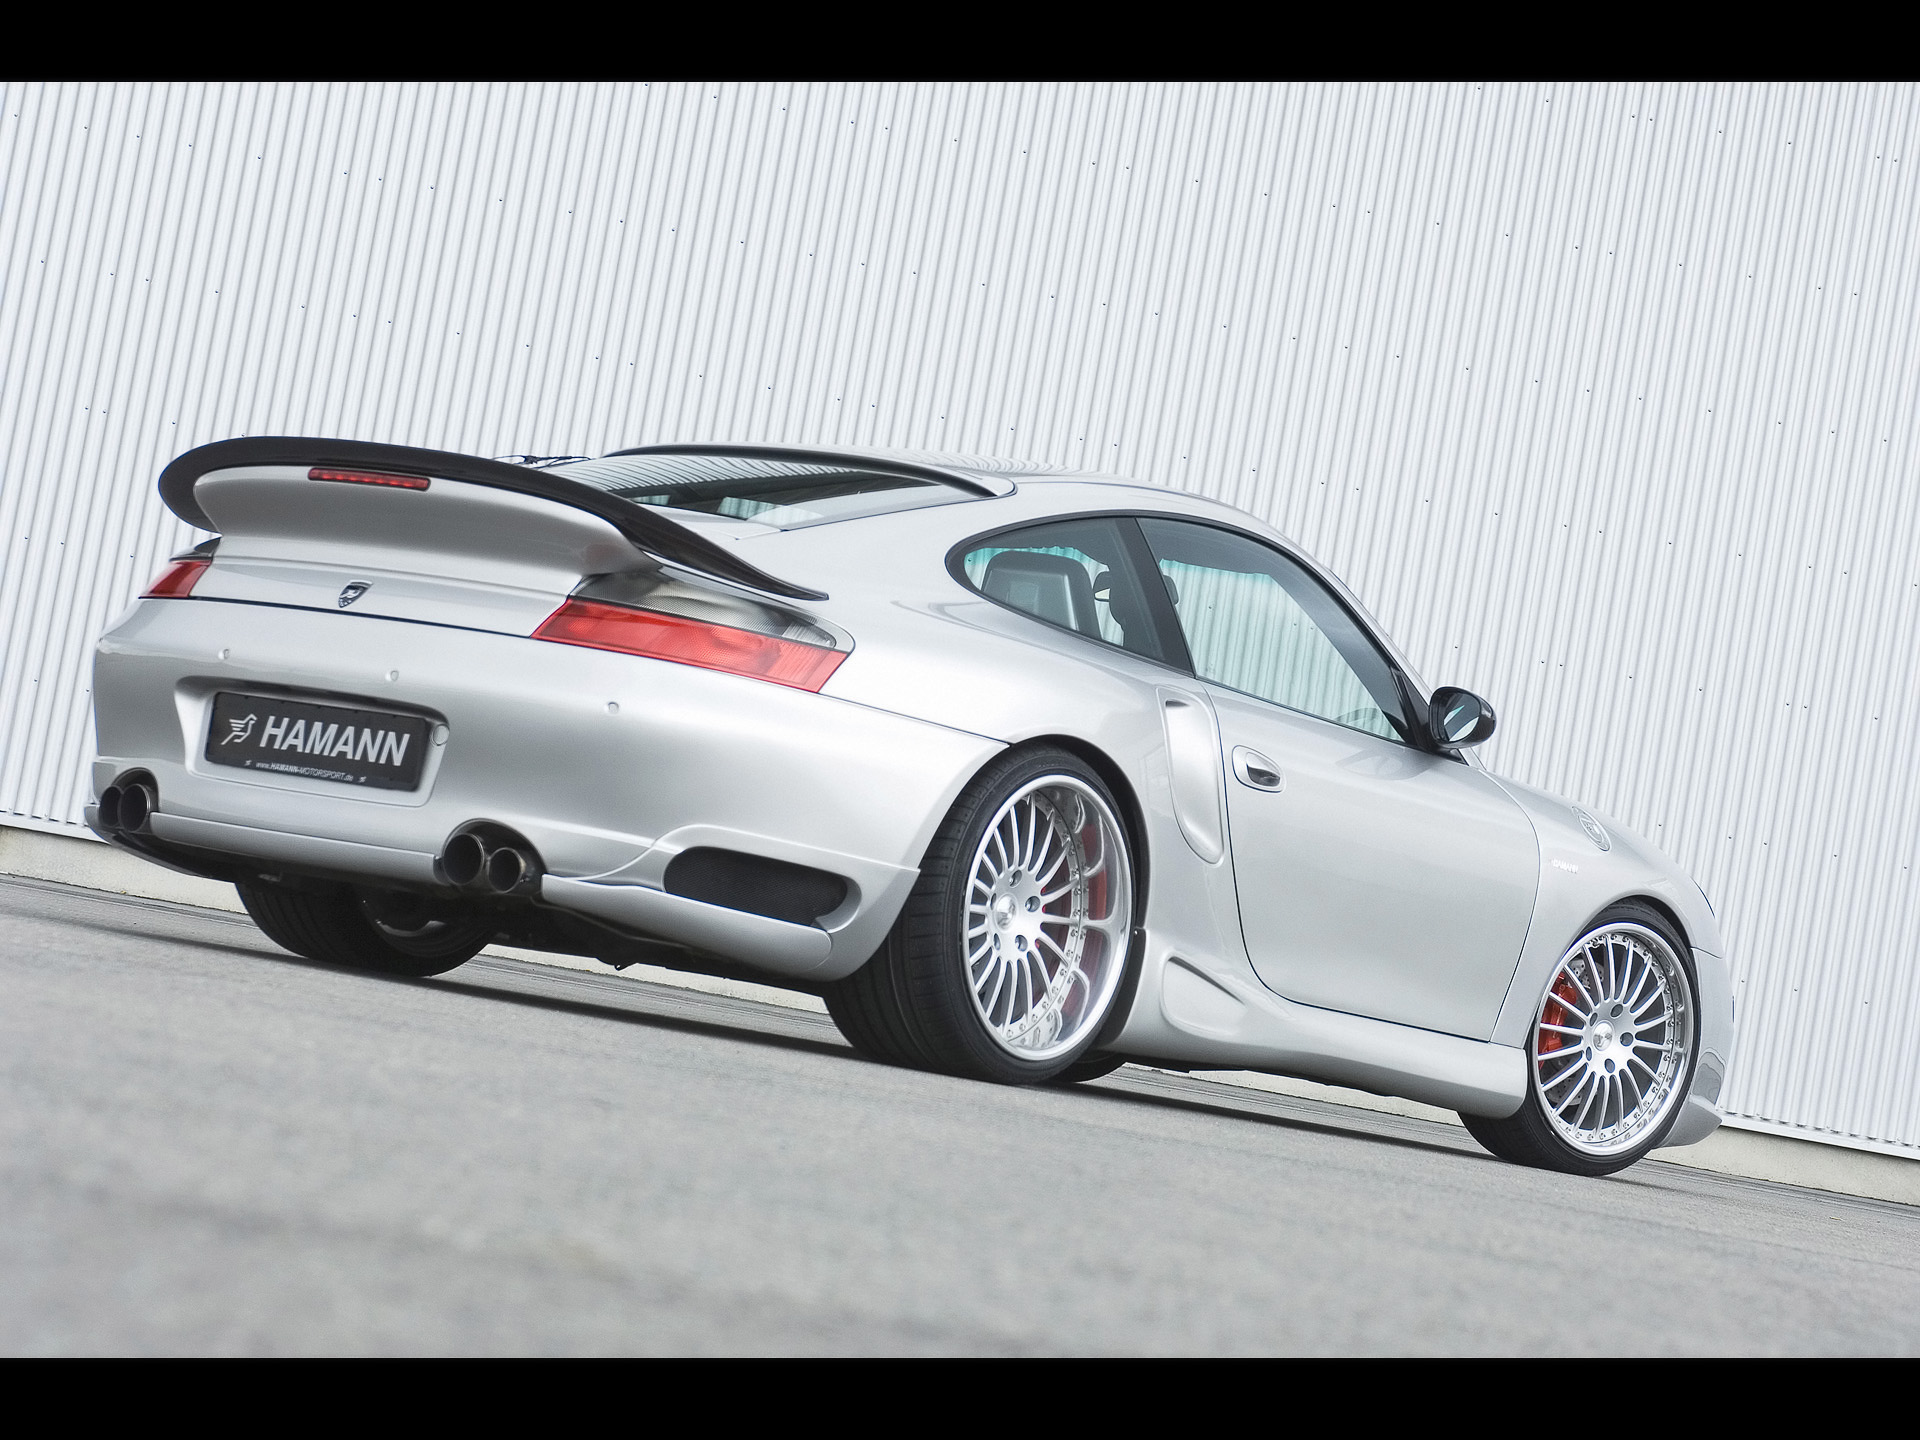 Hamann Porsche 911 Carrera photo 34978